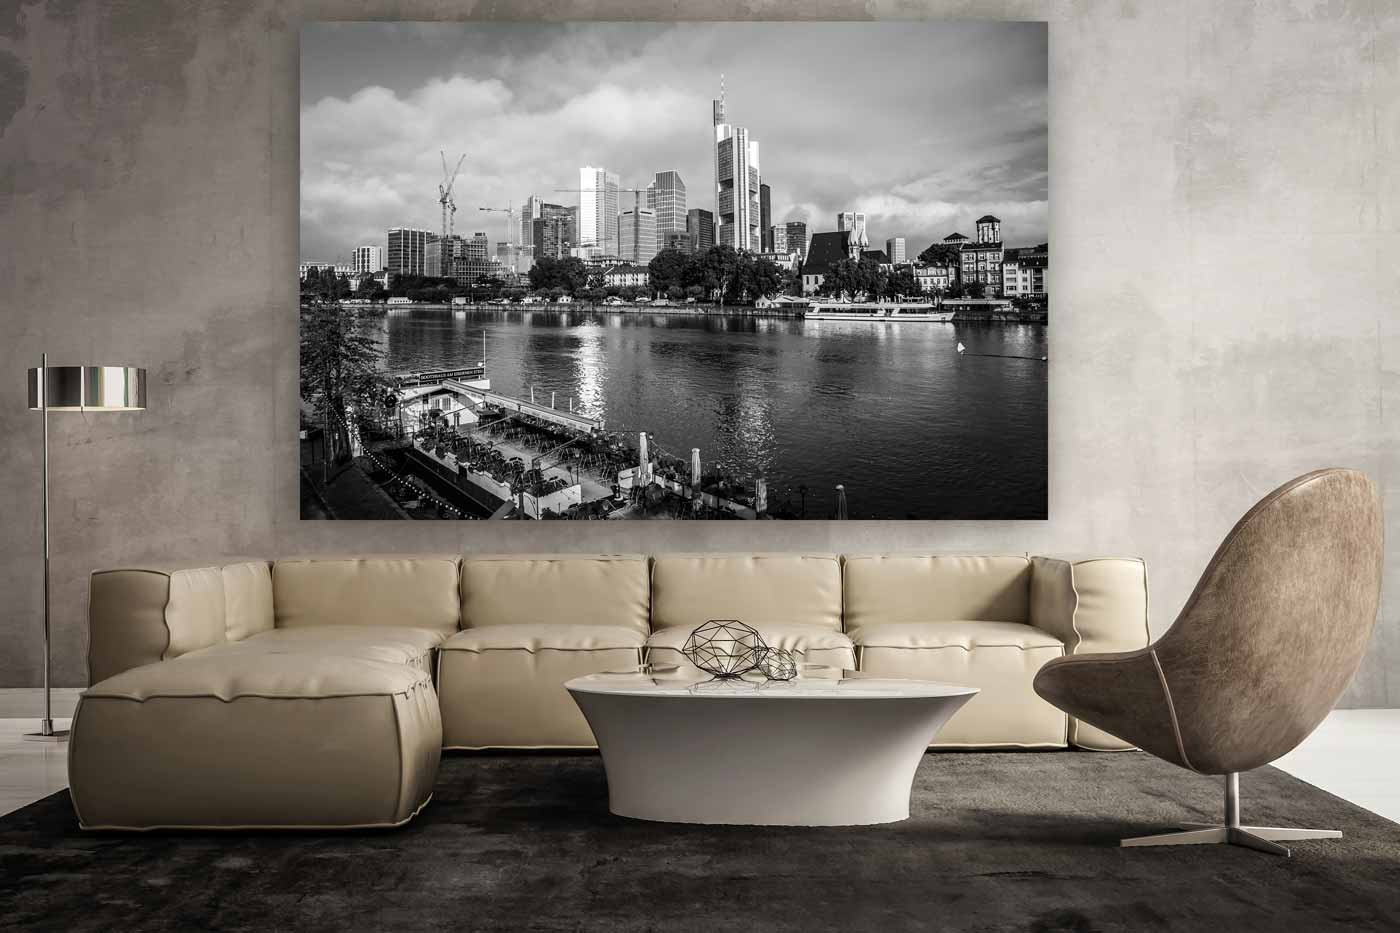 frankfurt skyline und panorama kunst bild in schwarz und. Black Bedroom Furniture Sets. Home Design Ideas